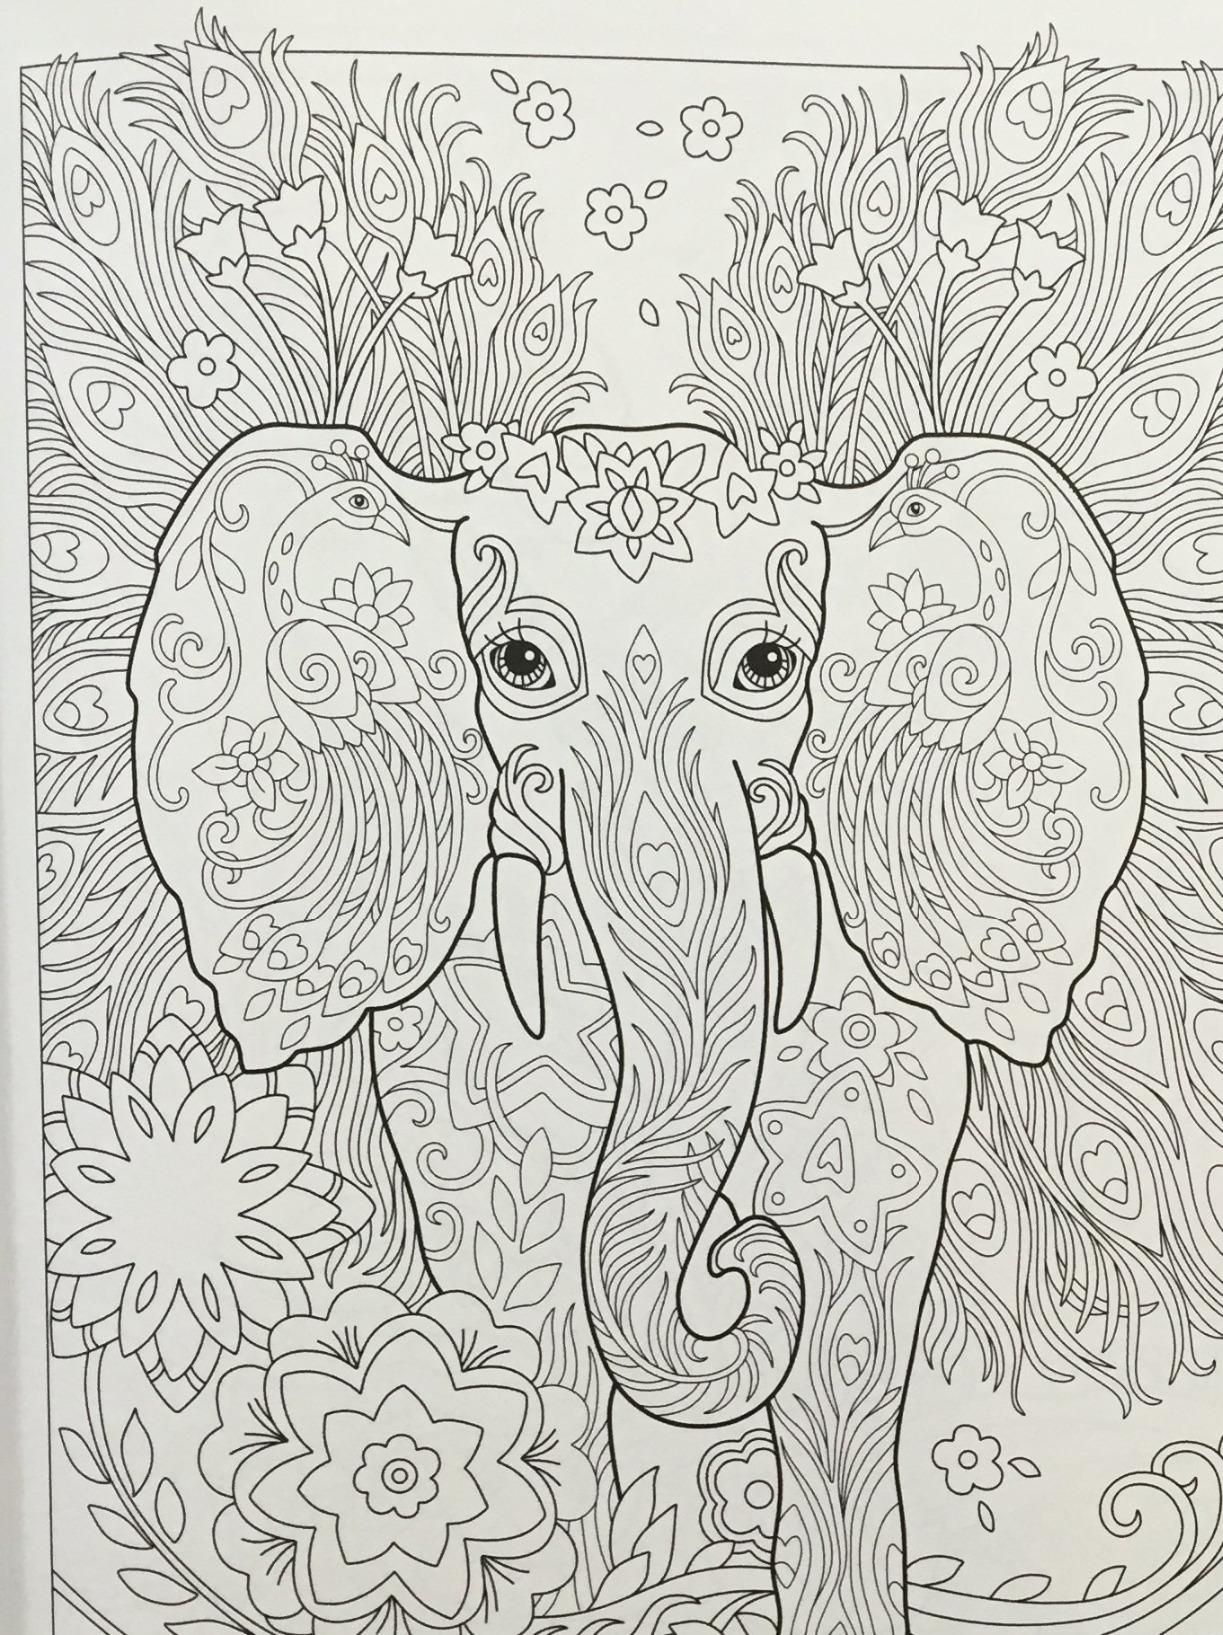 - Pin By Kathy Carney On Coloring Pages - Animals Elephant